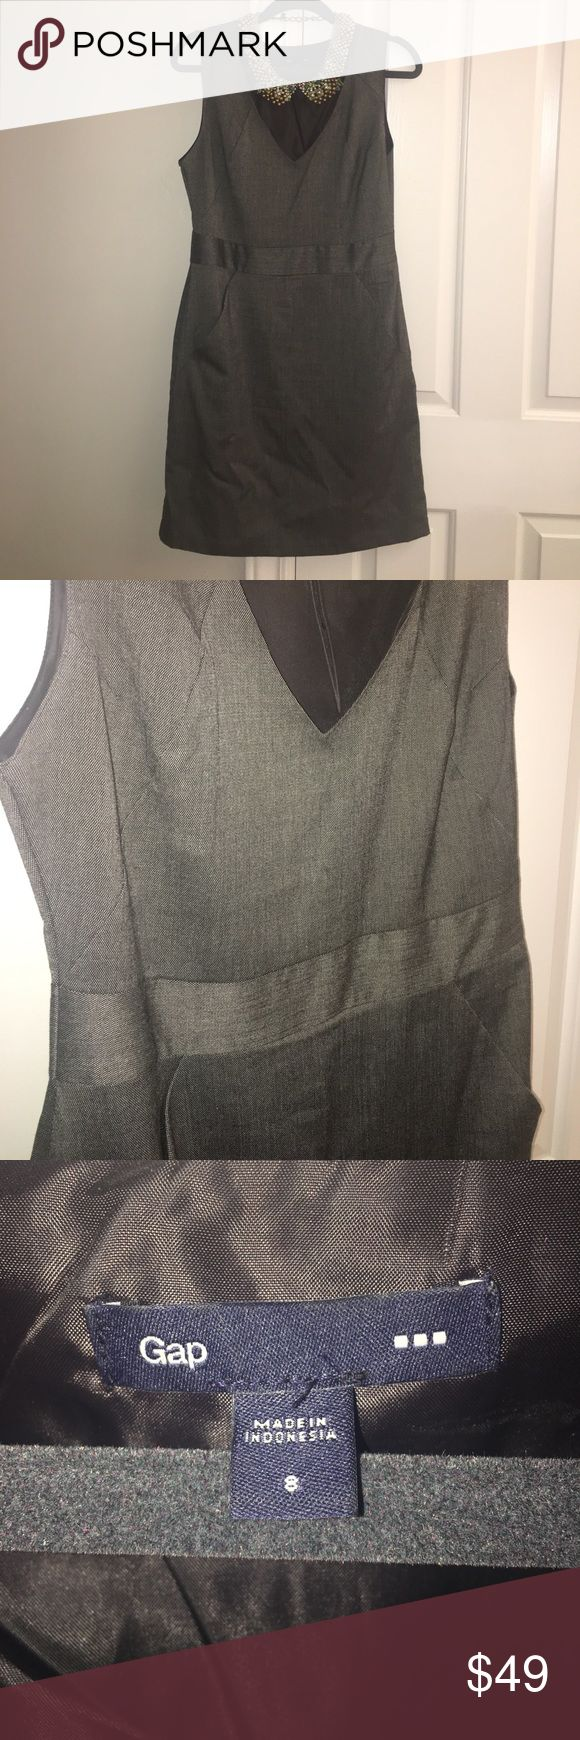 GAP dress - perfect for work! SZ 8 GAP - SZ 8, sheath dress, pockets! Zips up the side. Very versatile, just add a necklace and go! (CL) GAP Dresses Midi